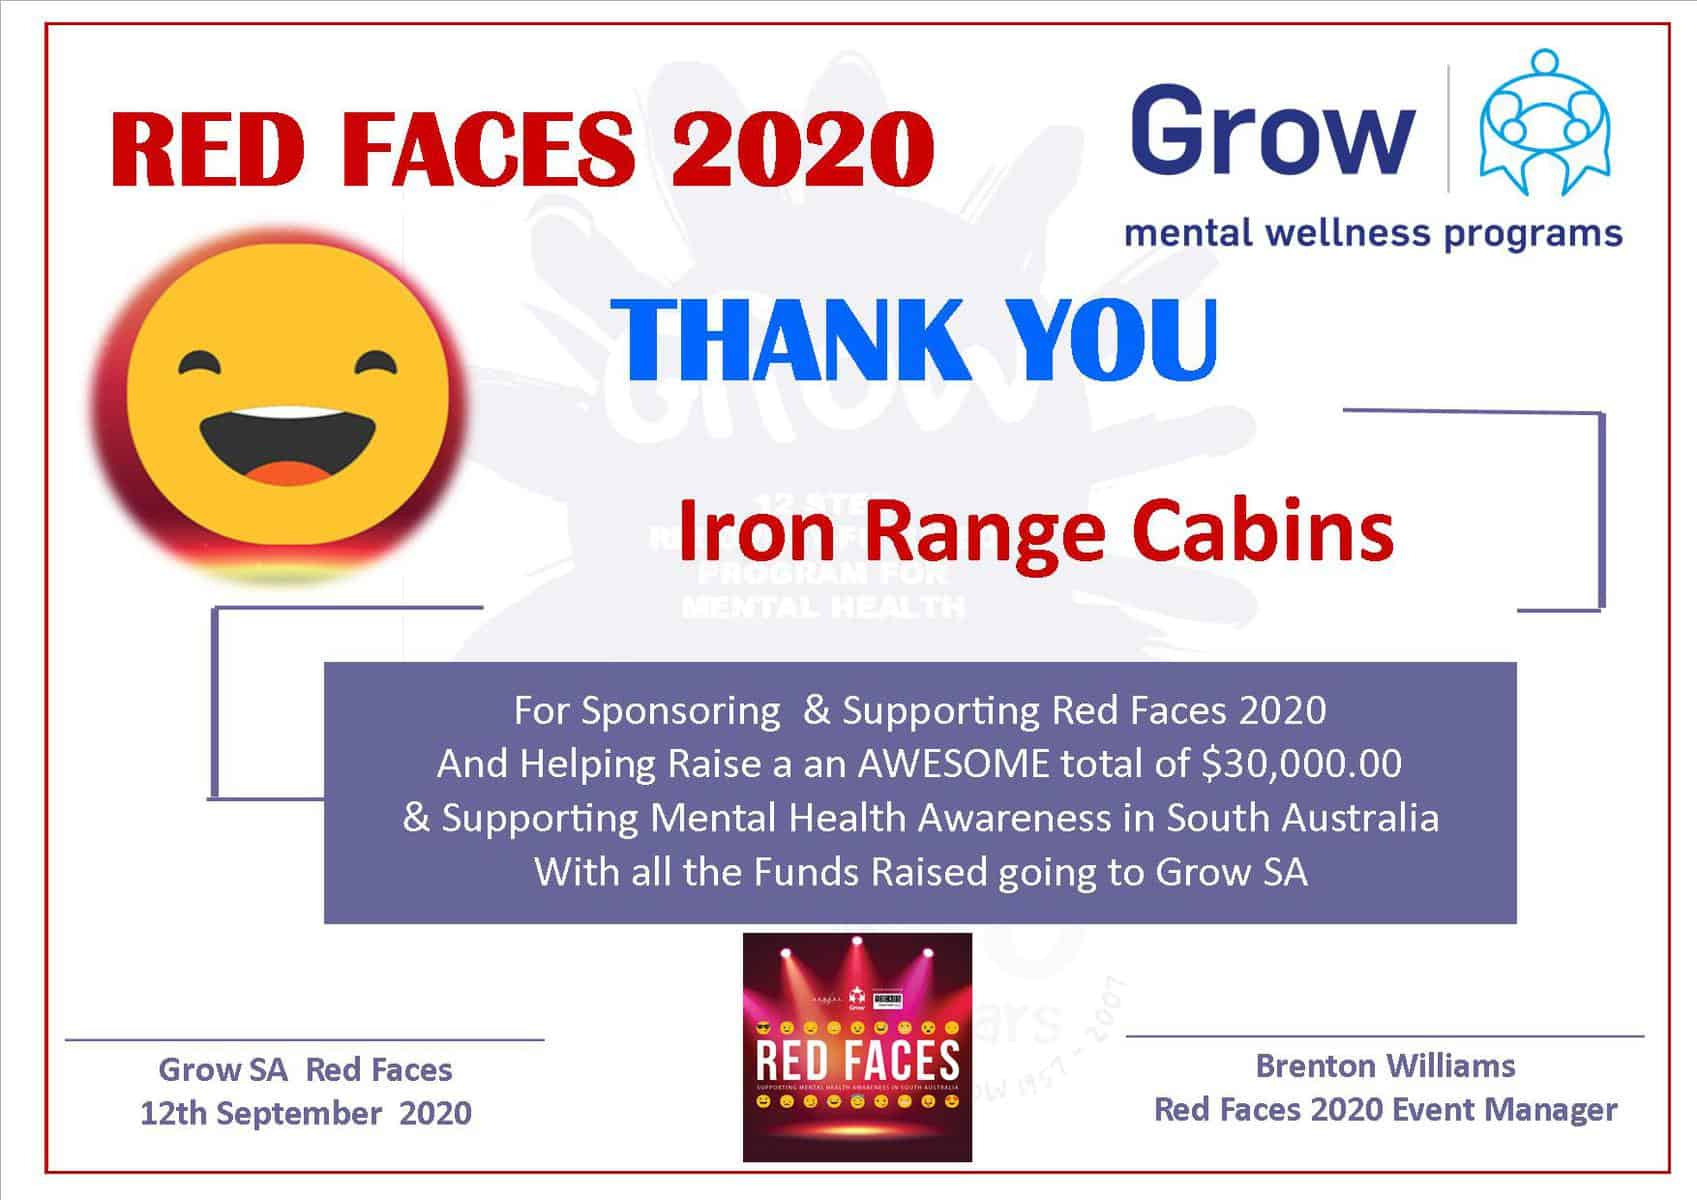 Red Faces 2020